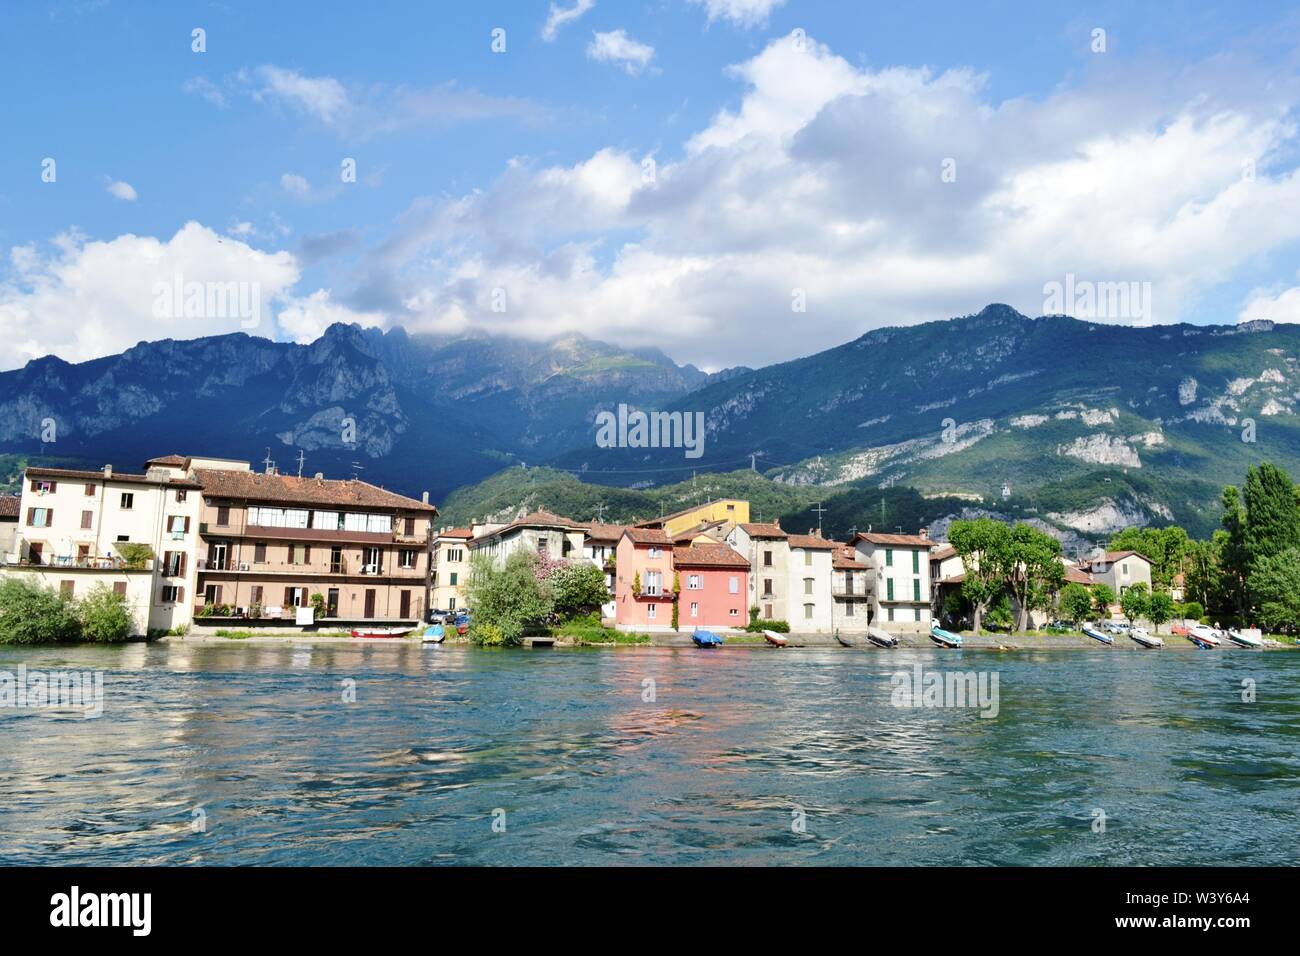 Panoramic view to Lecco Pescarenico fisherman district and the Adda river flowing in a sunny summer day with the Resegone mountain above them. Stock Photo